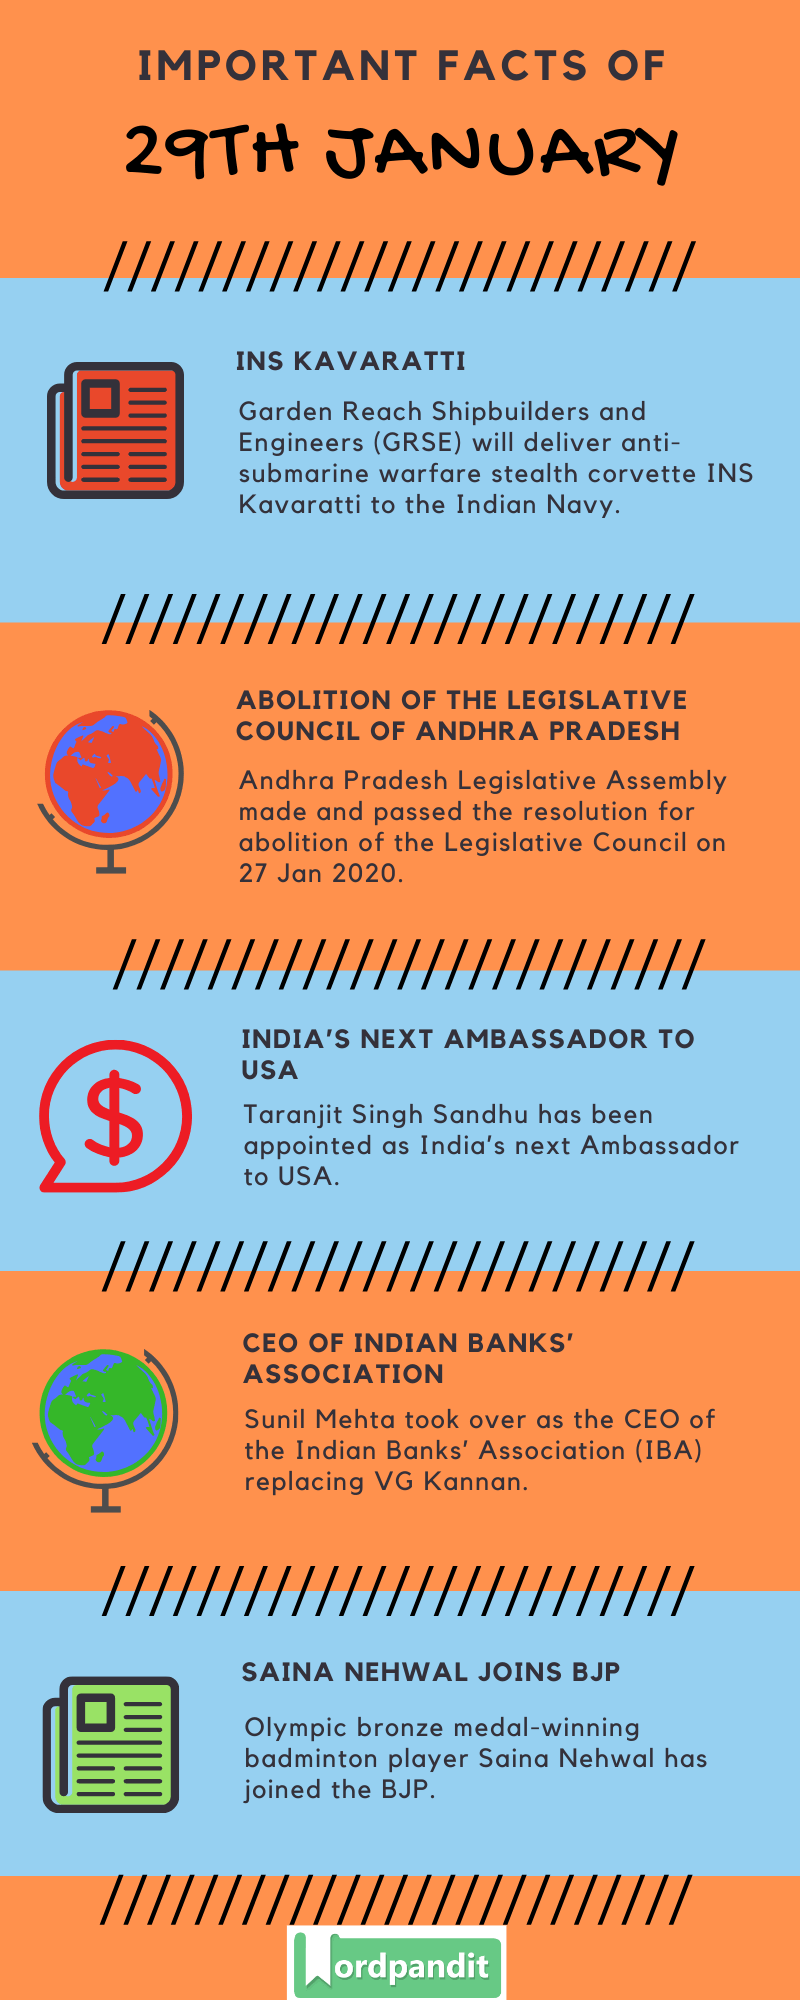 Daily Current Affairs 29 January 2020 Current Affairs Quiz 29 January 2020 Current Affairs Infographic